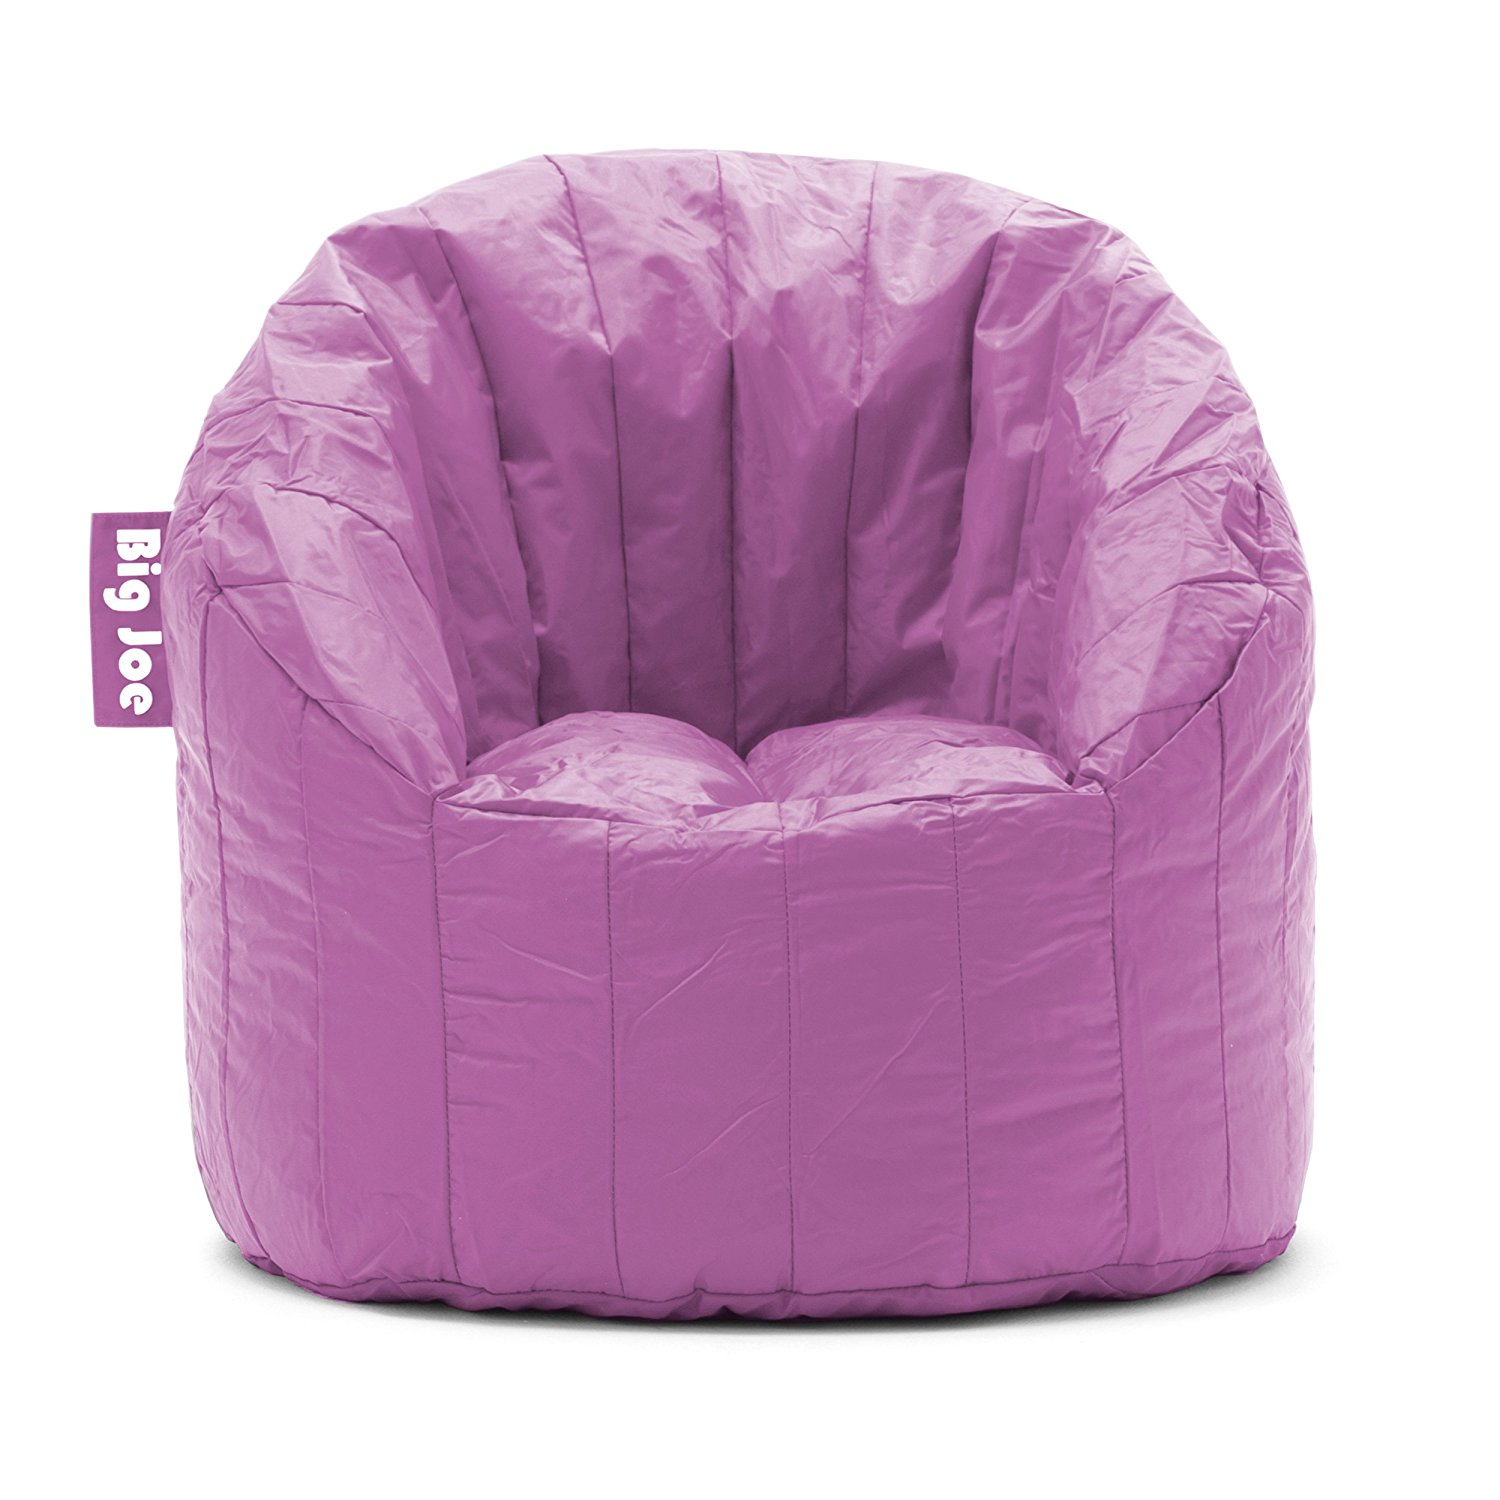 Big Joe Lumin SmartMax Fabric Chair, Fuchsia, $59